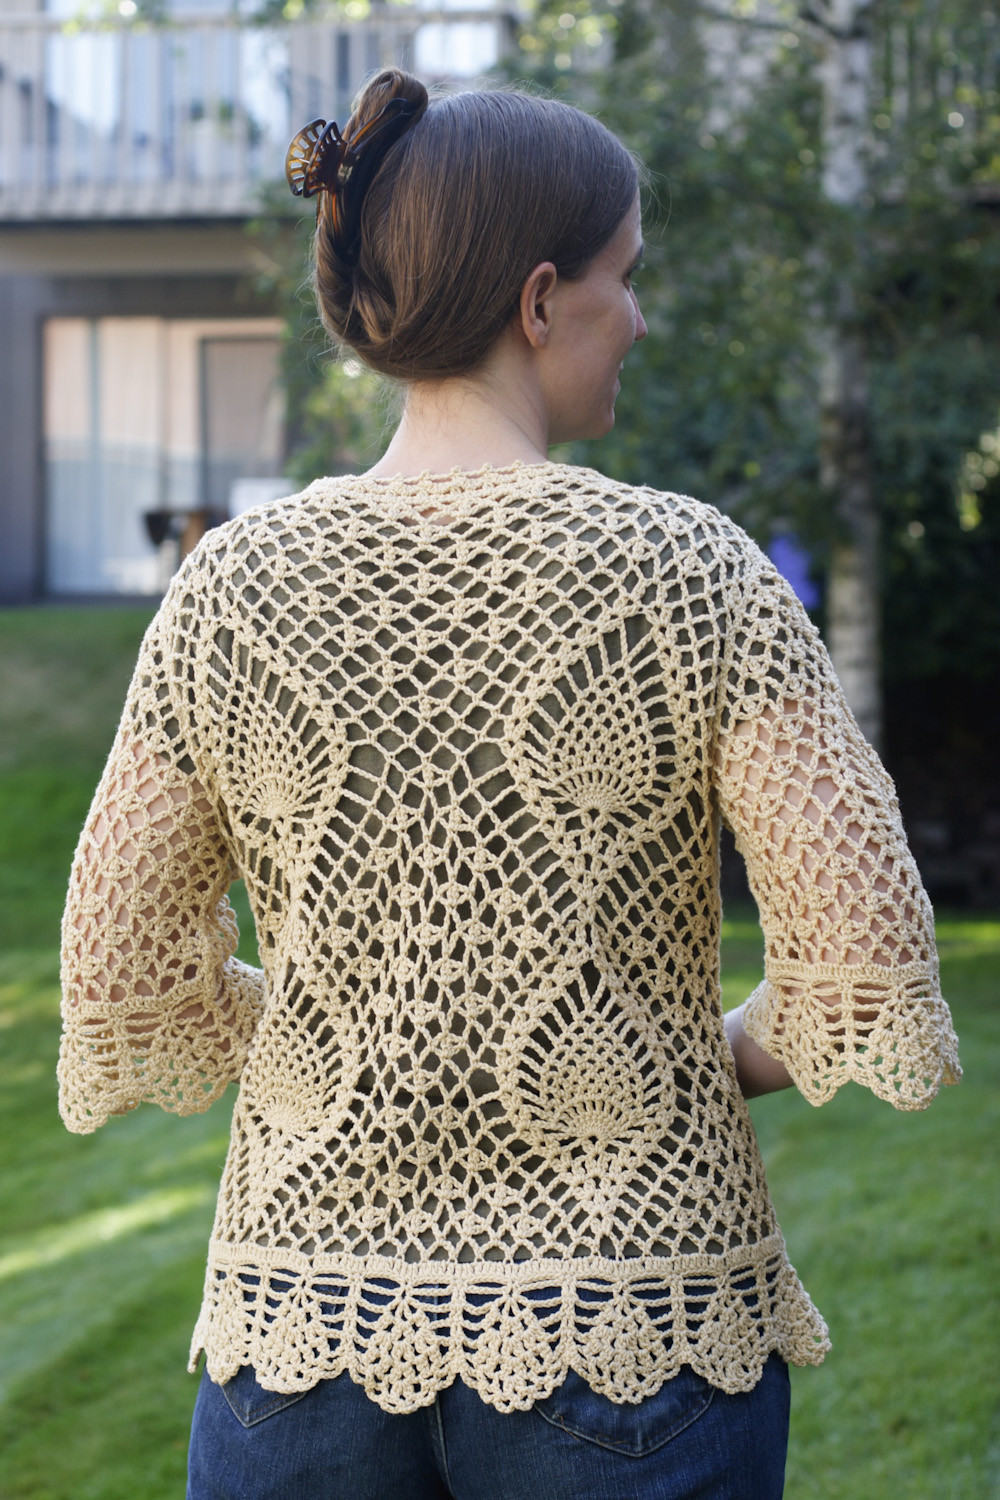 Best Of Crochet Pattern Sweater Woman Crochet Pullover Of Top 47 Images Crochet Pullover